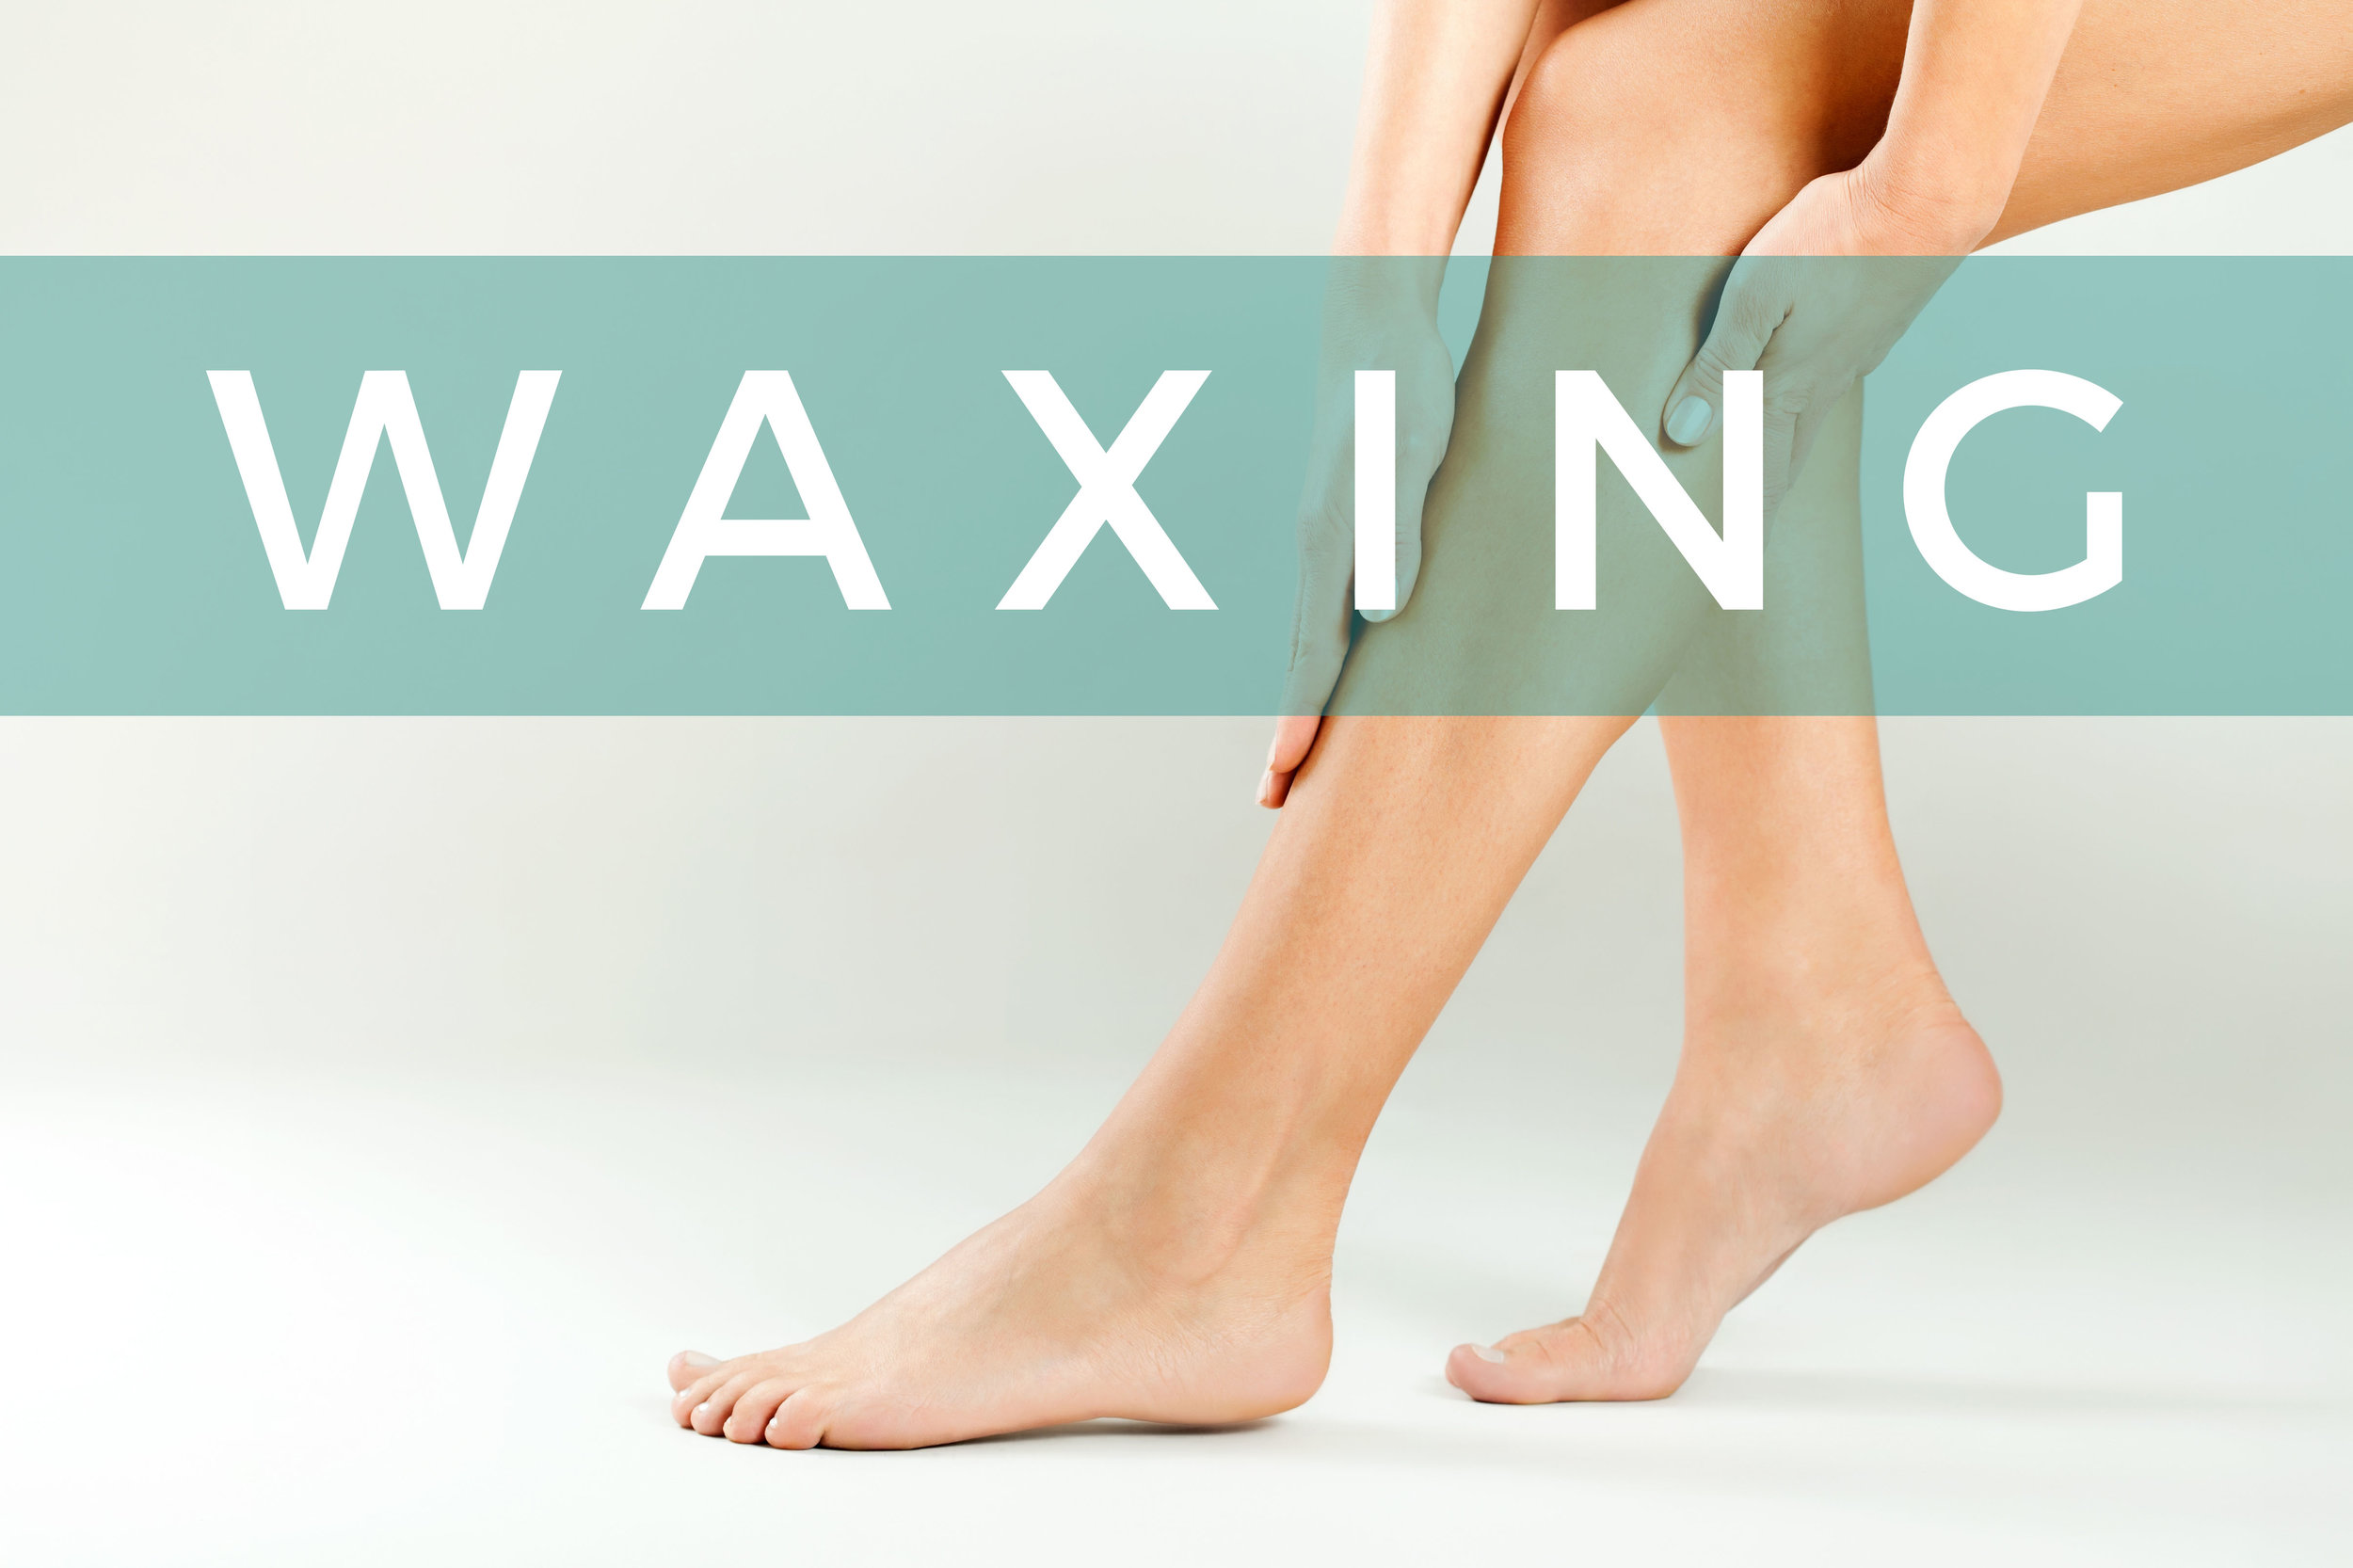 Amy Rojek - Waxing Services in Chicago